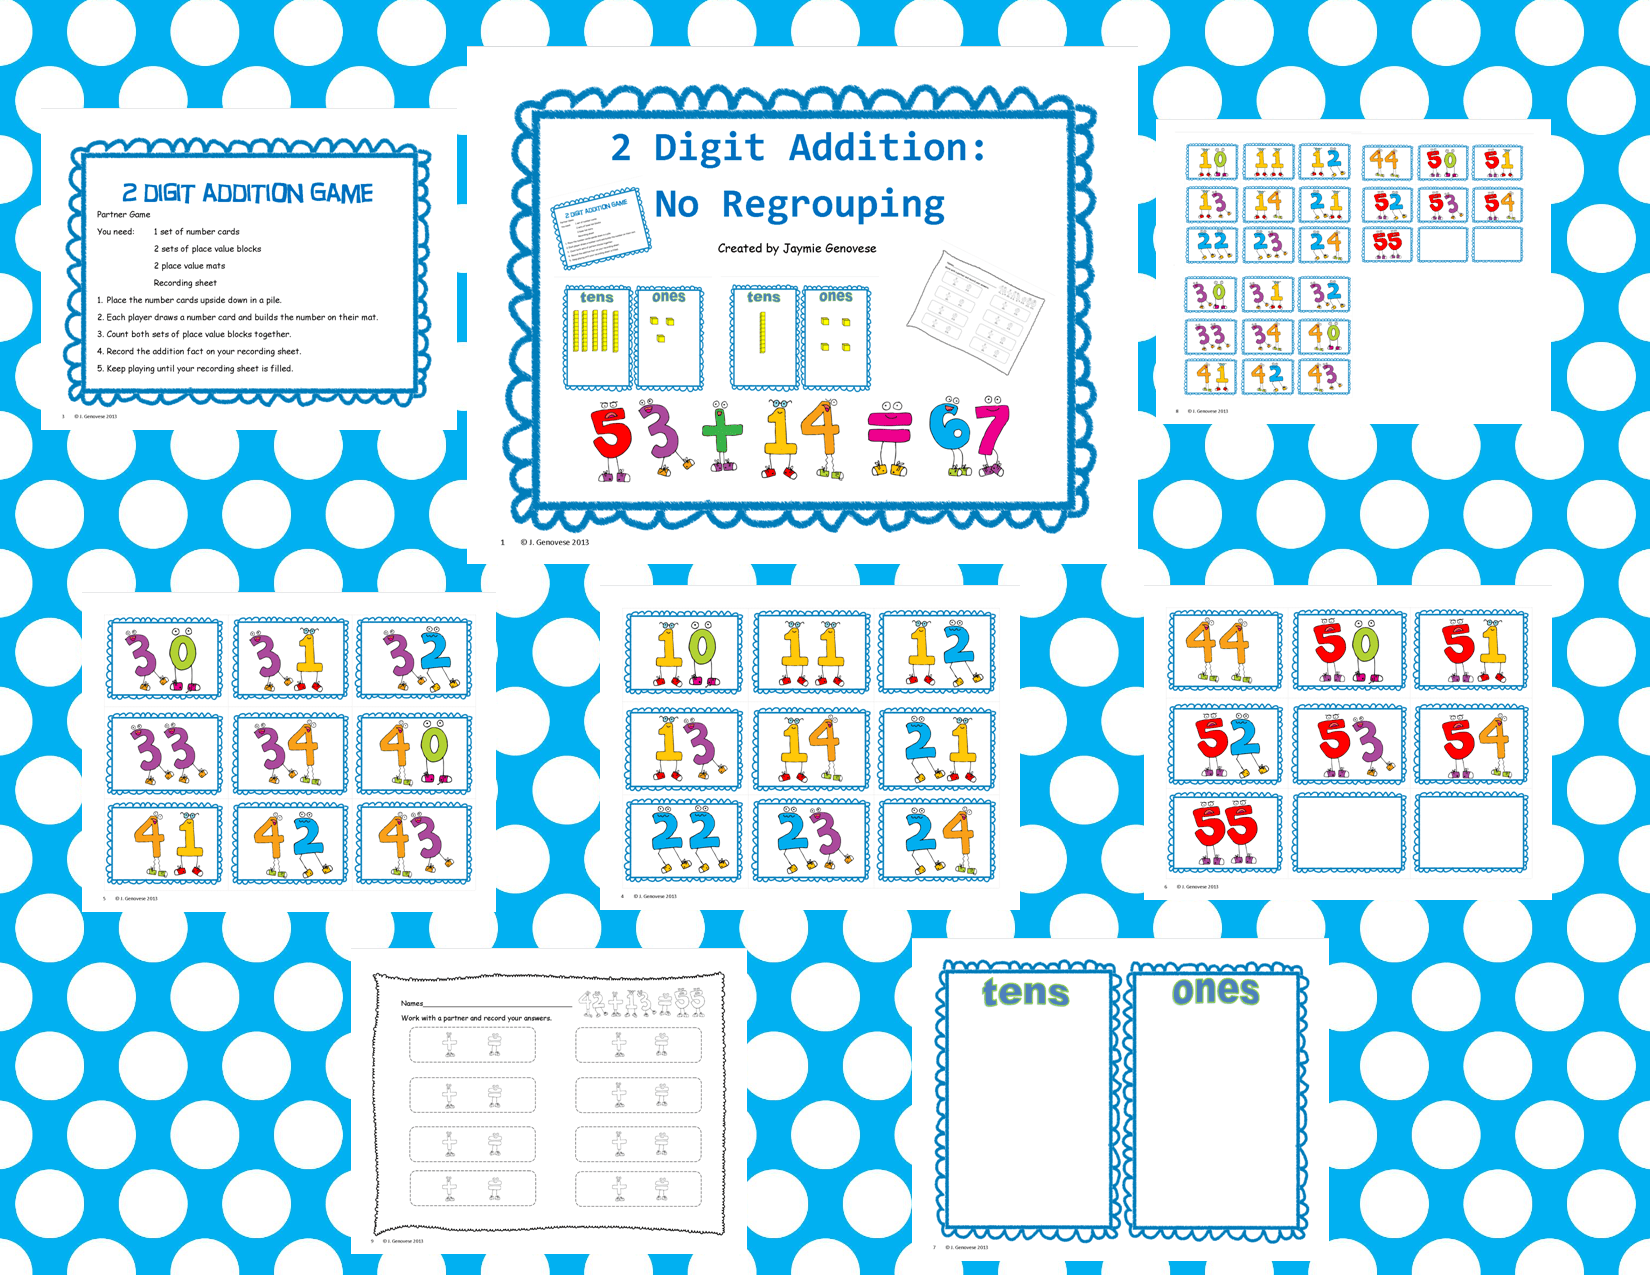 Two Digit Addition No Regrouping 1 Nbt 4 And 2 Nbt 5